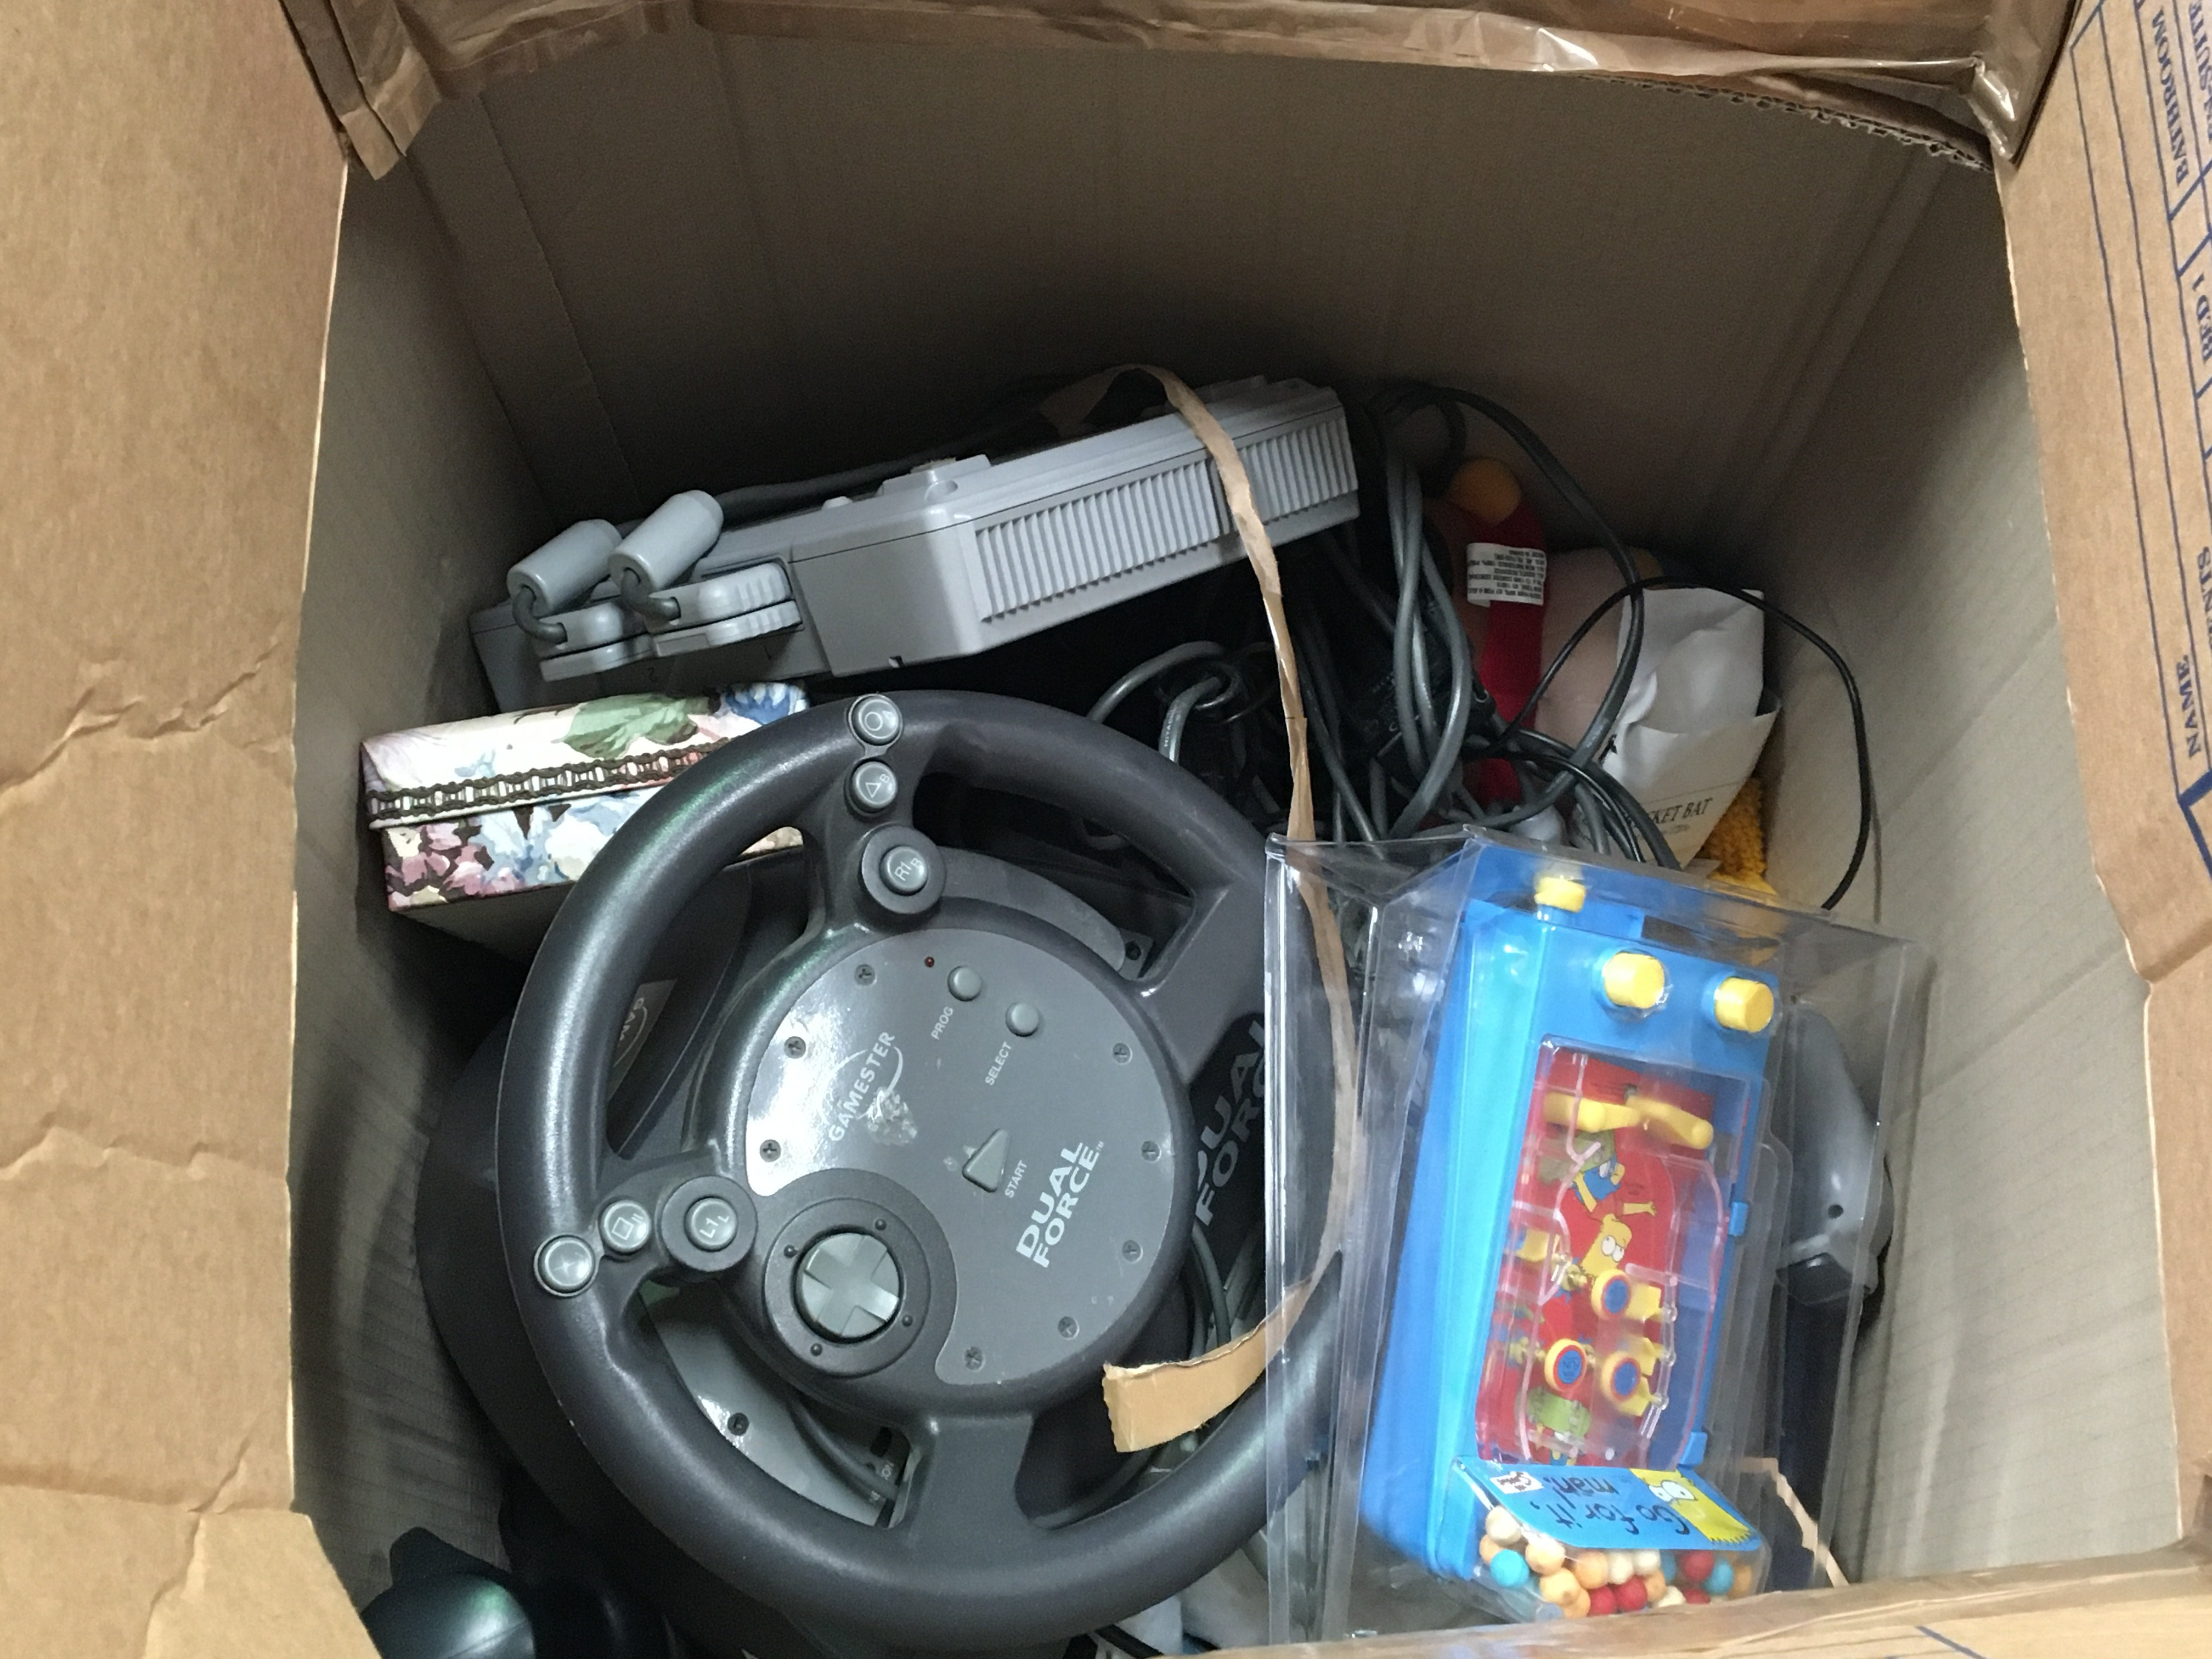 Three boxes containing vintage computer games including a PS1 and other Intendo wii and music CDs